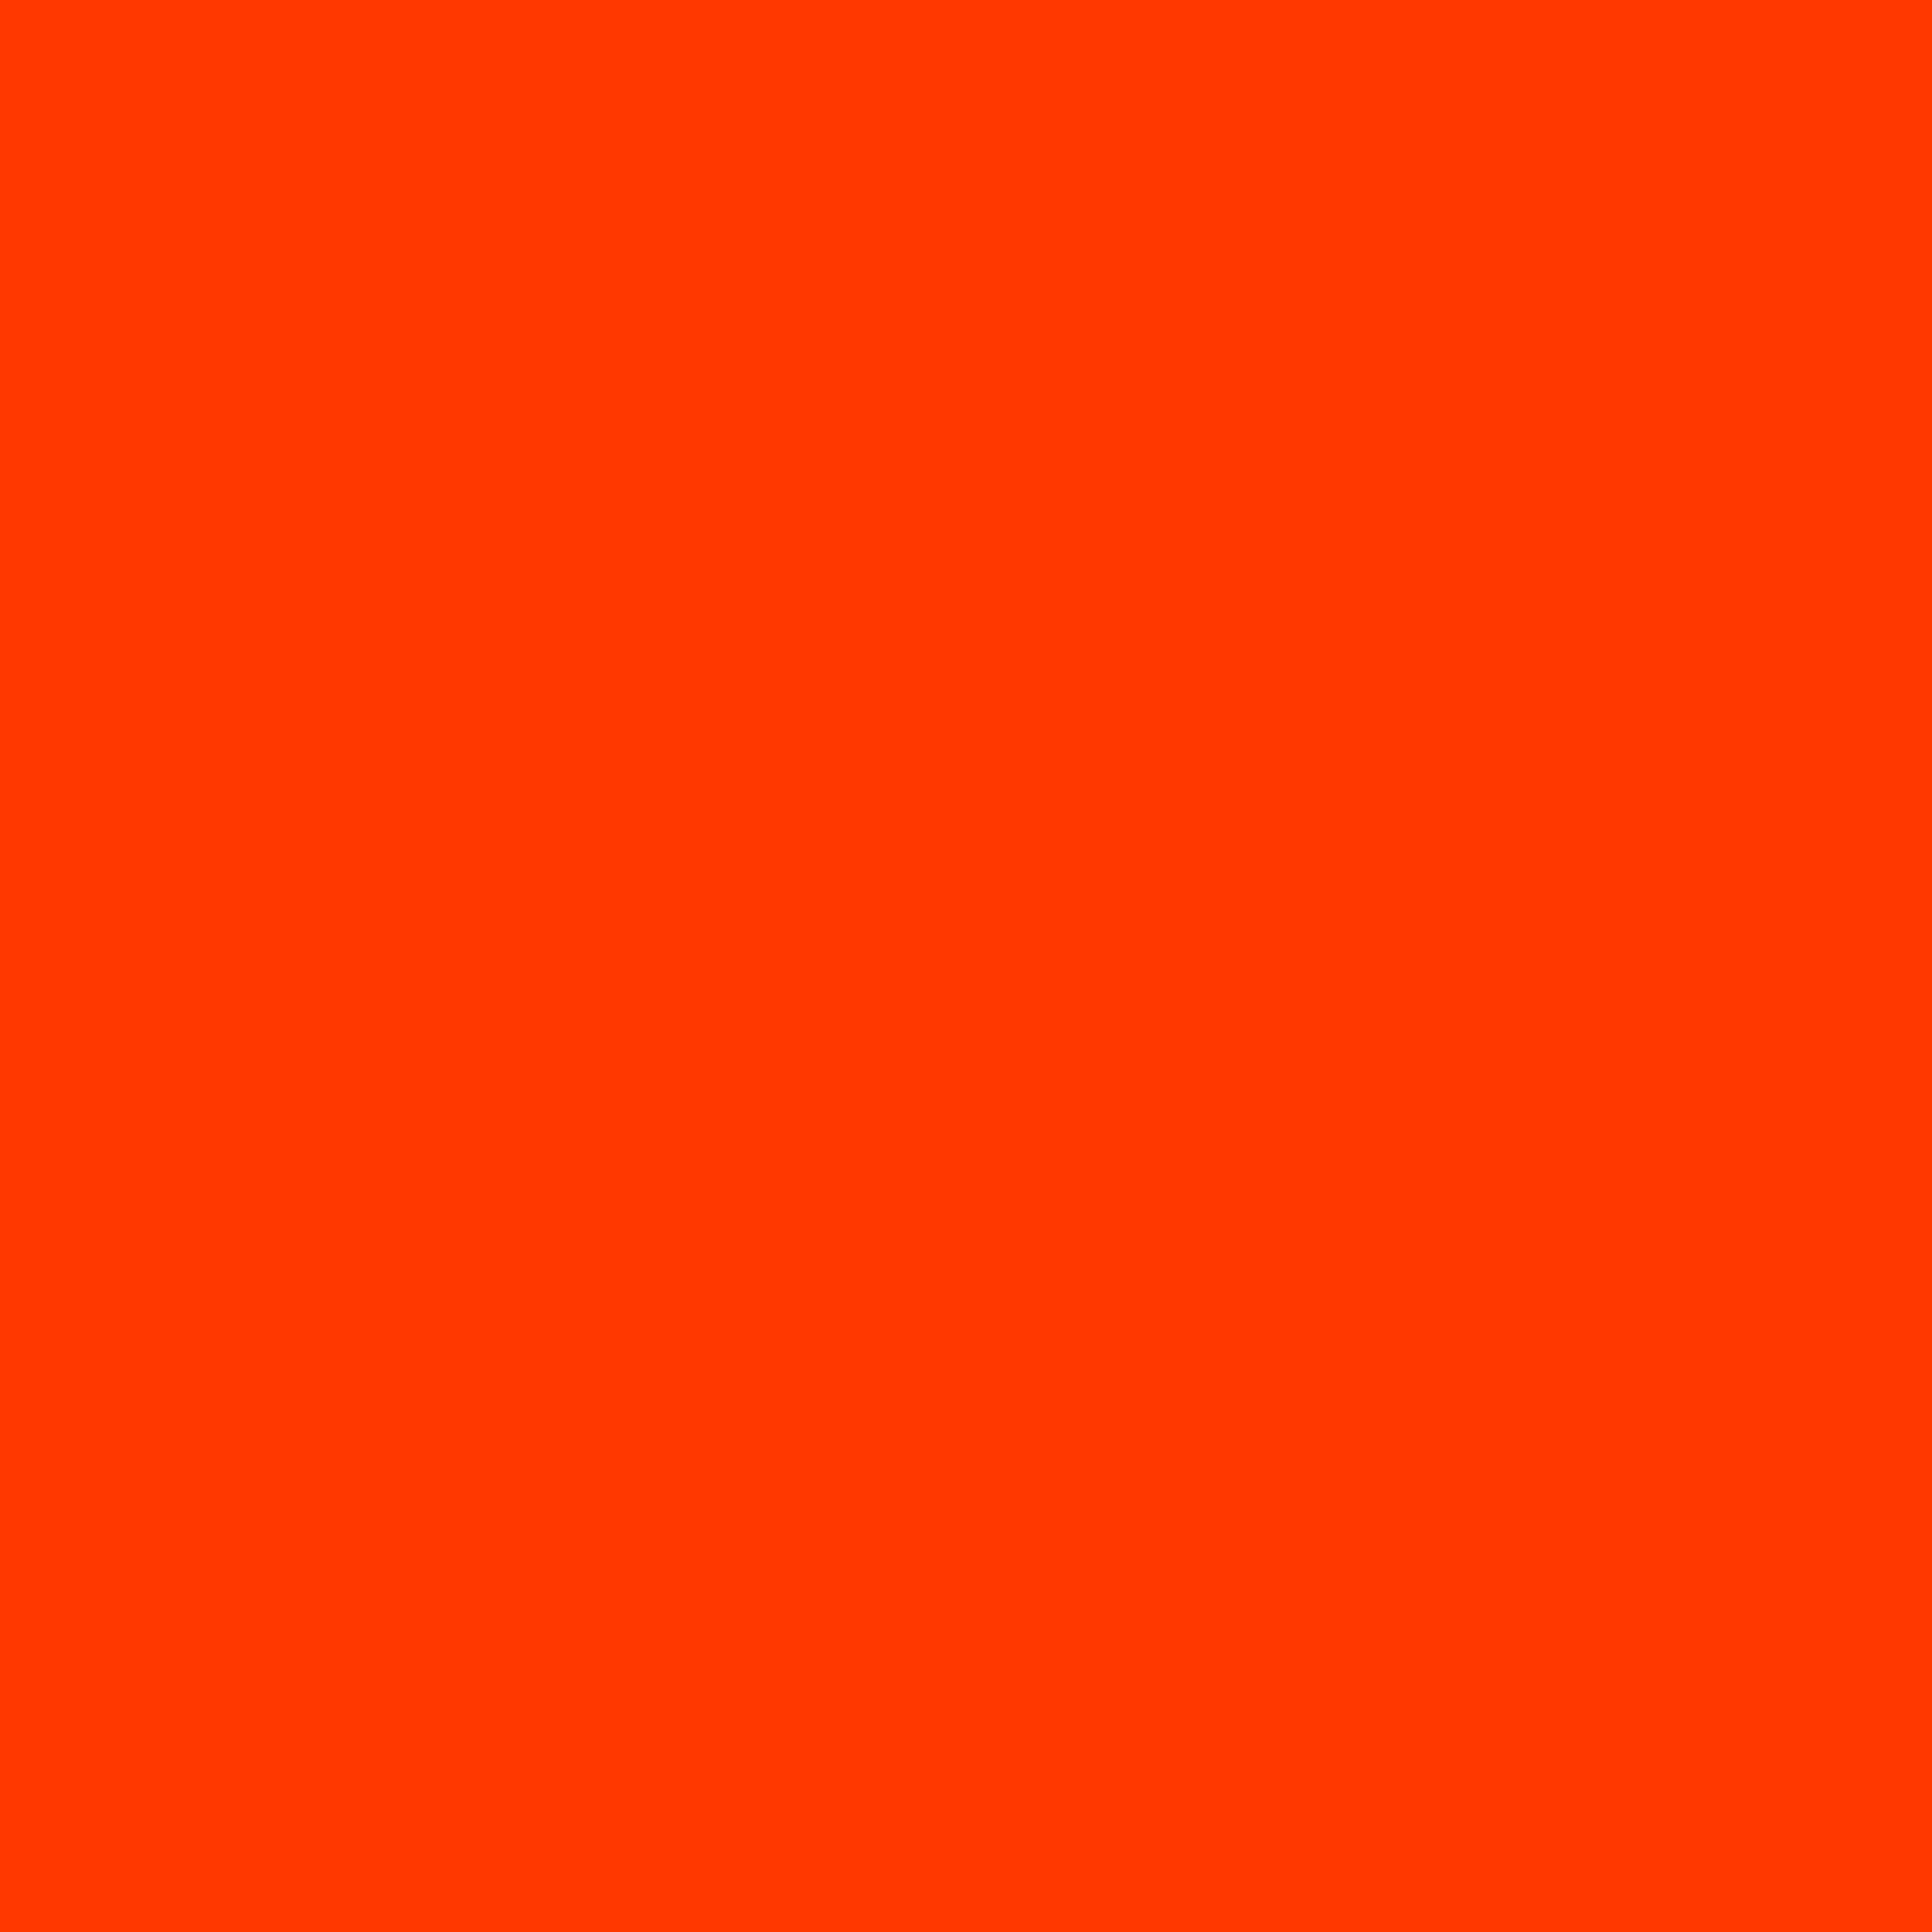 2732x2732 Coquelicot Solid Color Background